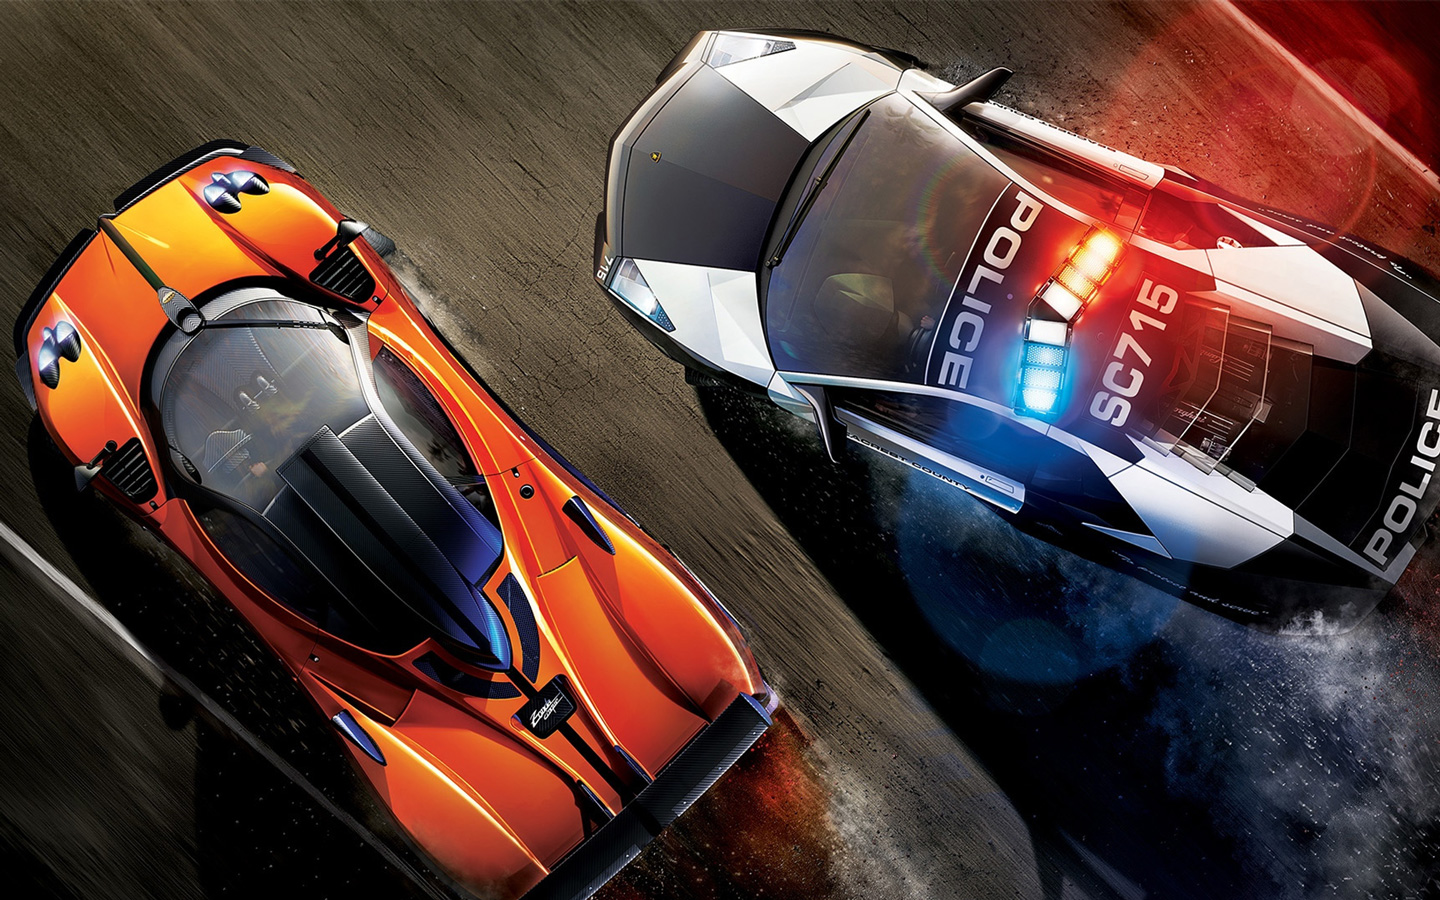 Need for Speed: Hot Pursuit Wallpaper in 1440x900